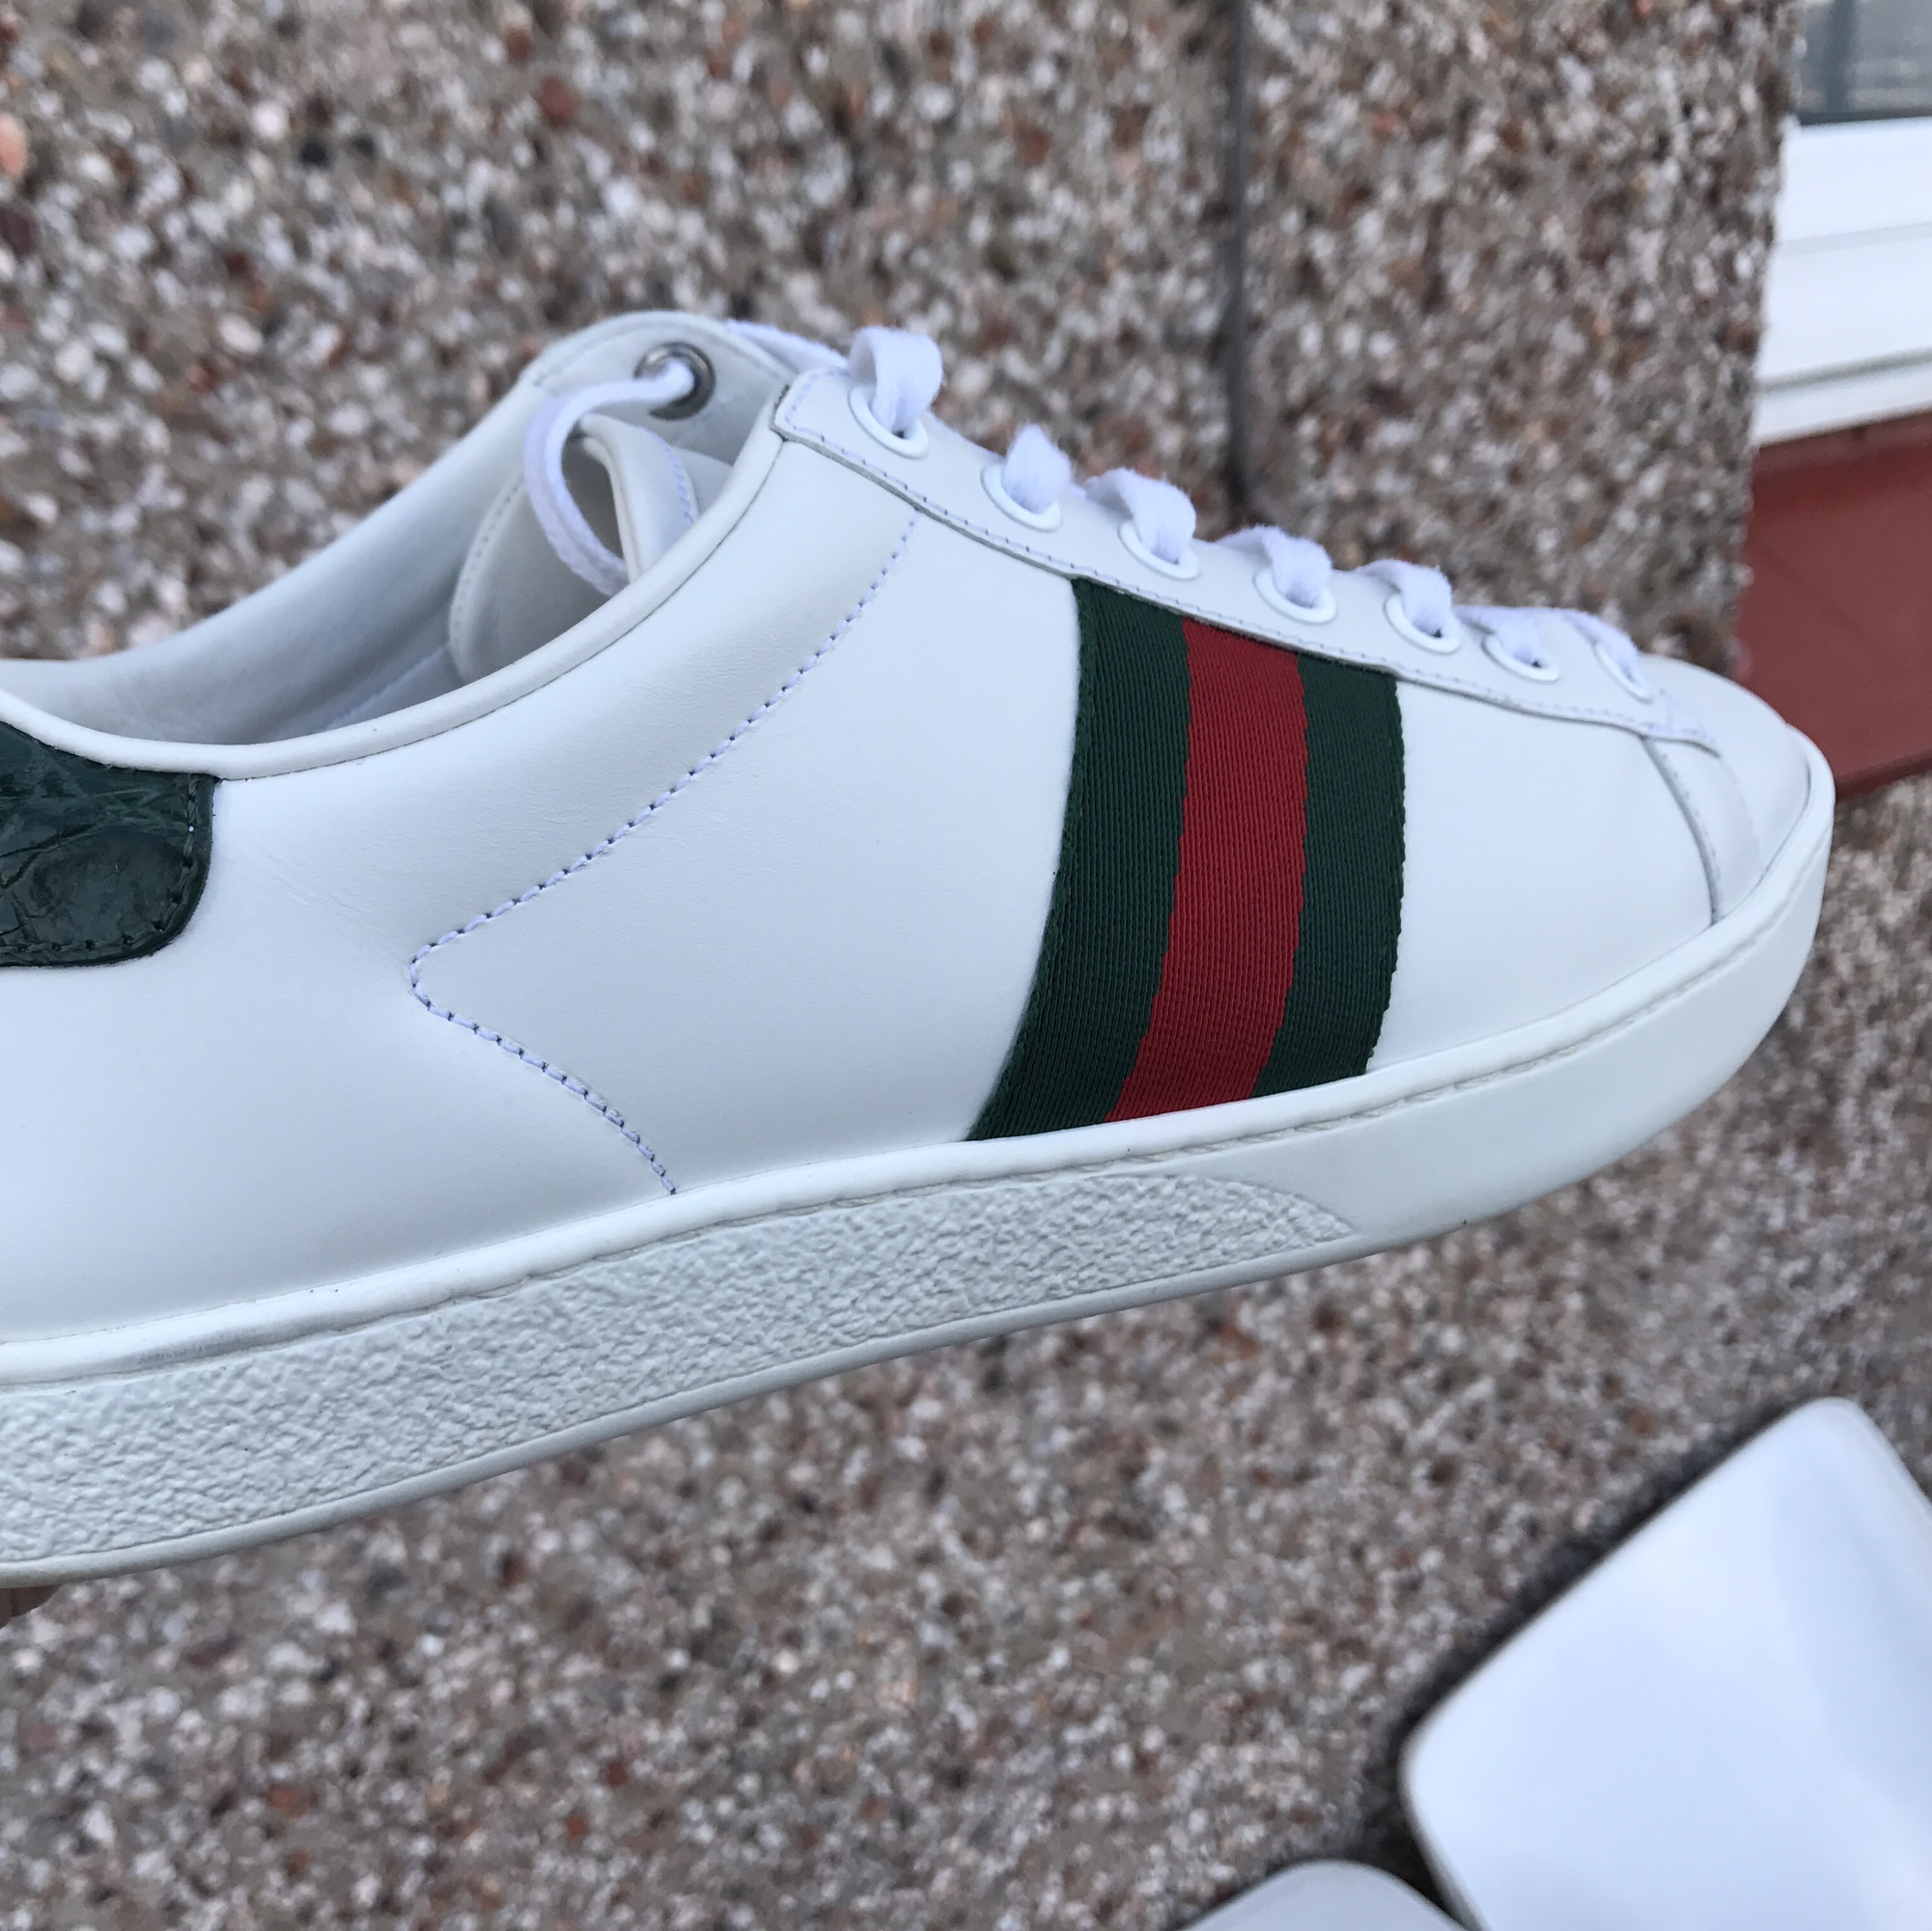 Pair a gucci ace trainers for sale